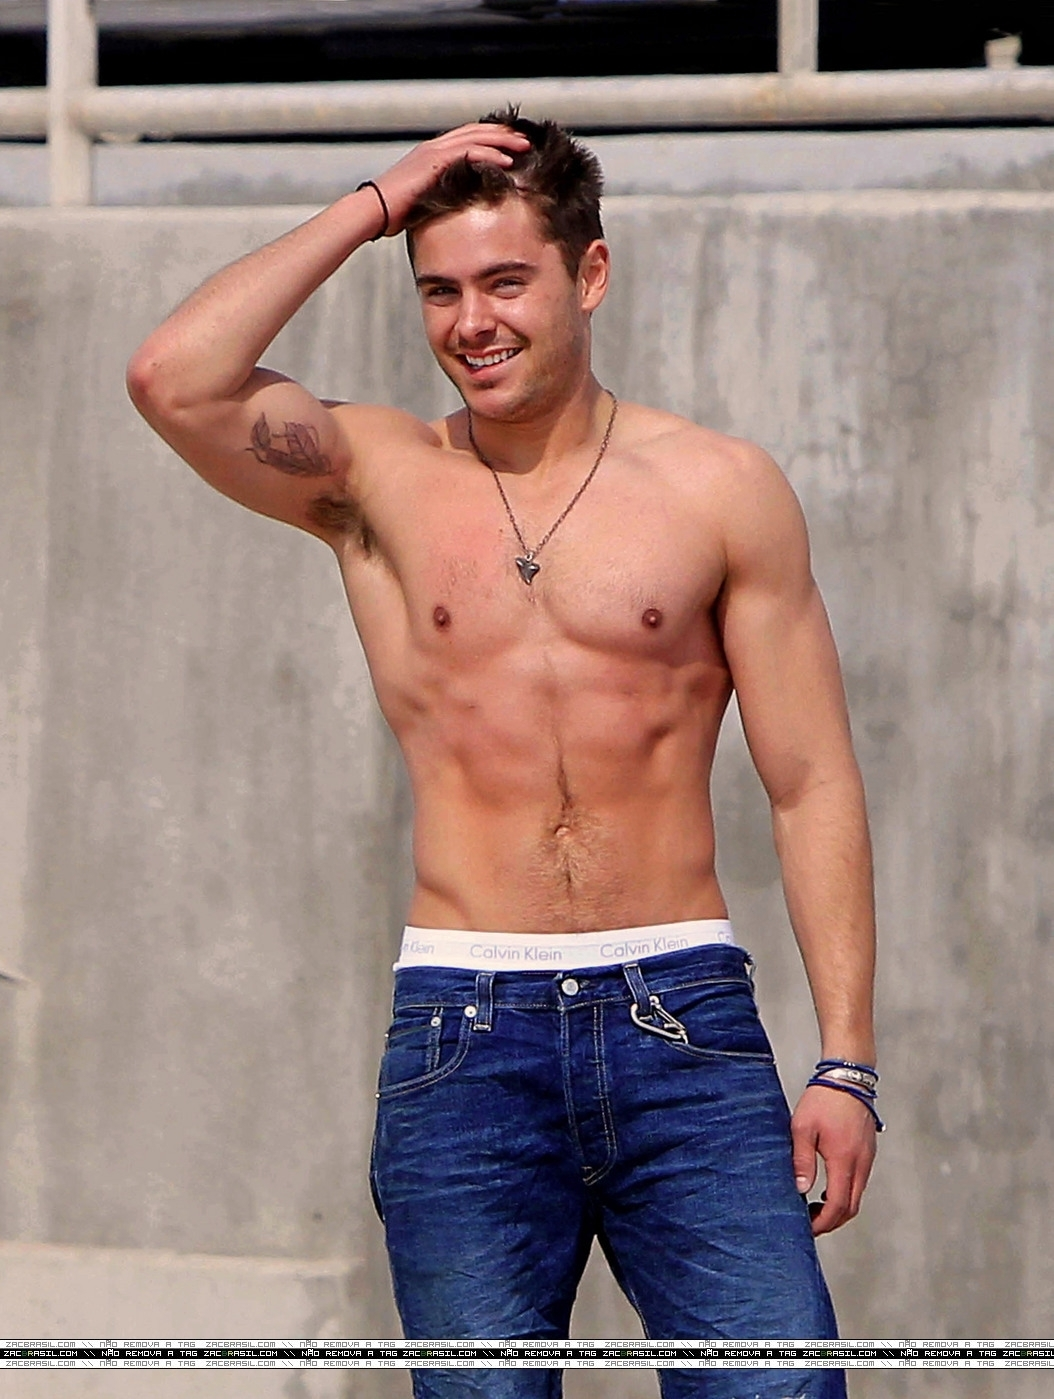 Zac Efron Zac Hot Photoshoot!